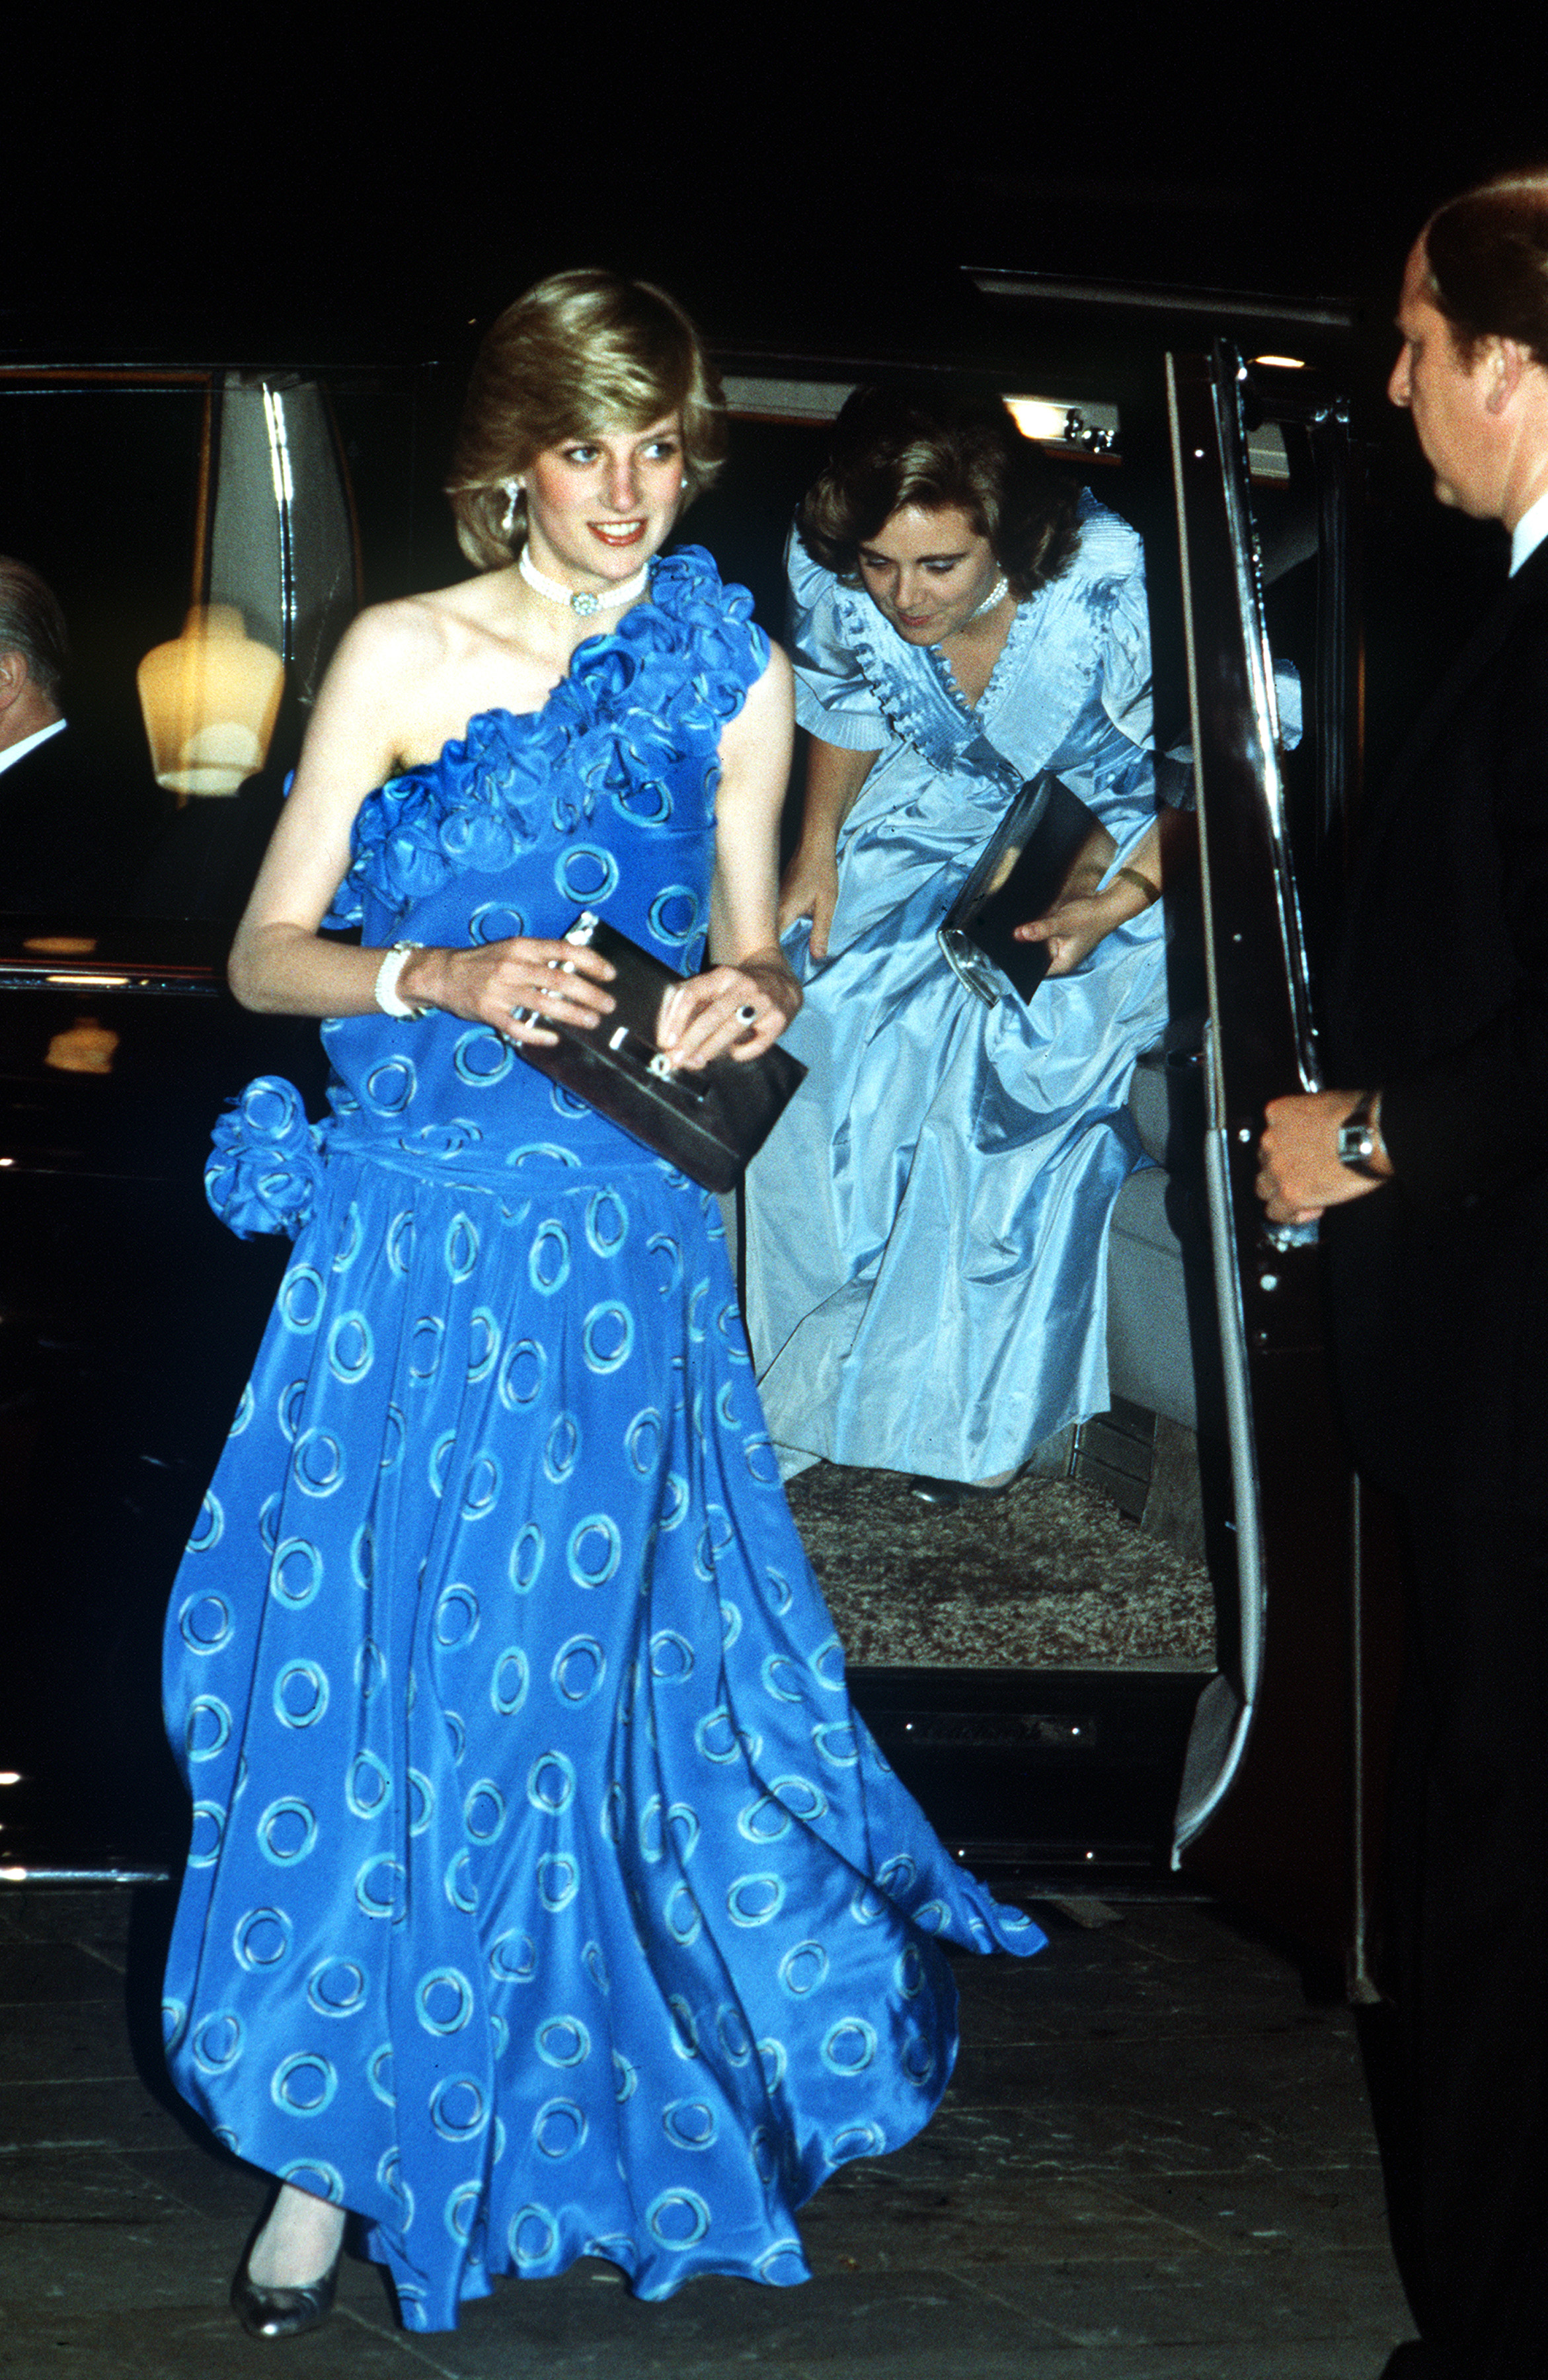 Diana's bright blue, drop-waist Bruce Oldfield dress worn to a fashion show in November 1982 caused plenty of buzz because it showed off how slender the princess had become, less than a year after giving birth to Prince William. She later revealed that she had suffered from eating disorders during the early days of her marriage to Prince Charles.